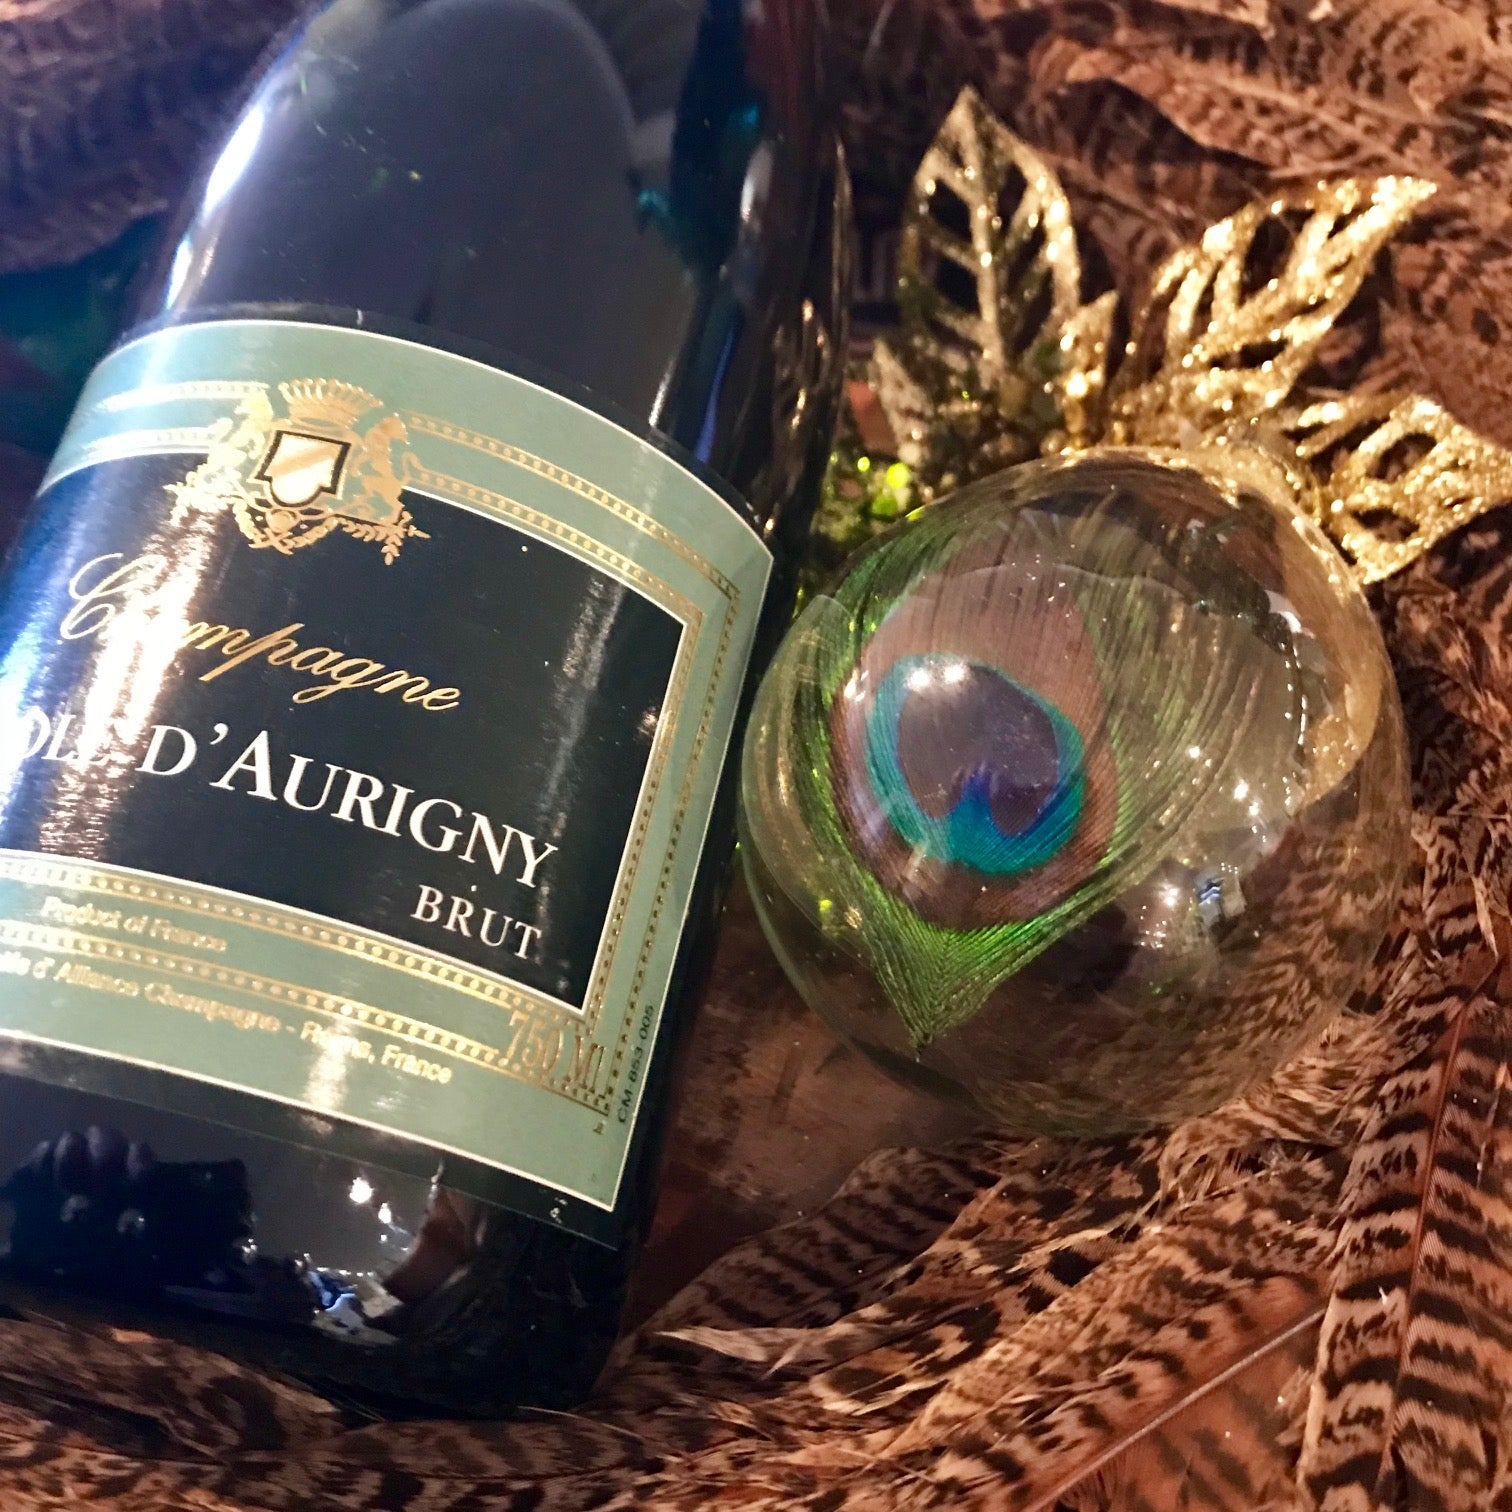 Bubbles and Baubles Saturday November 10th